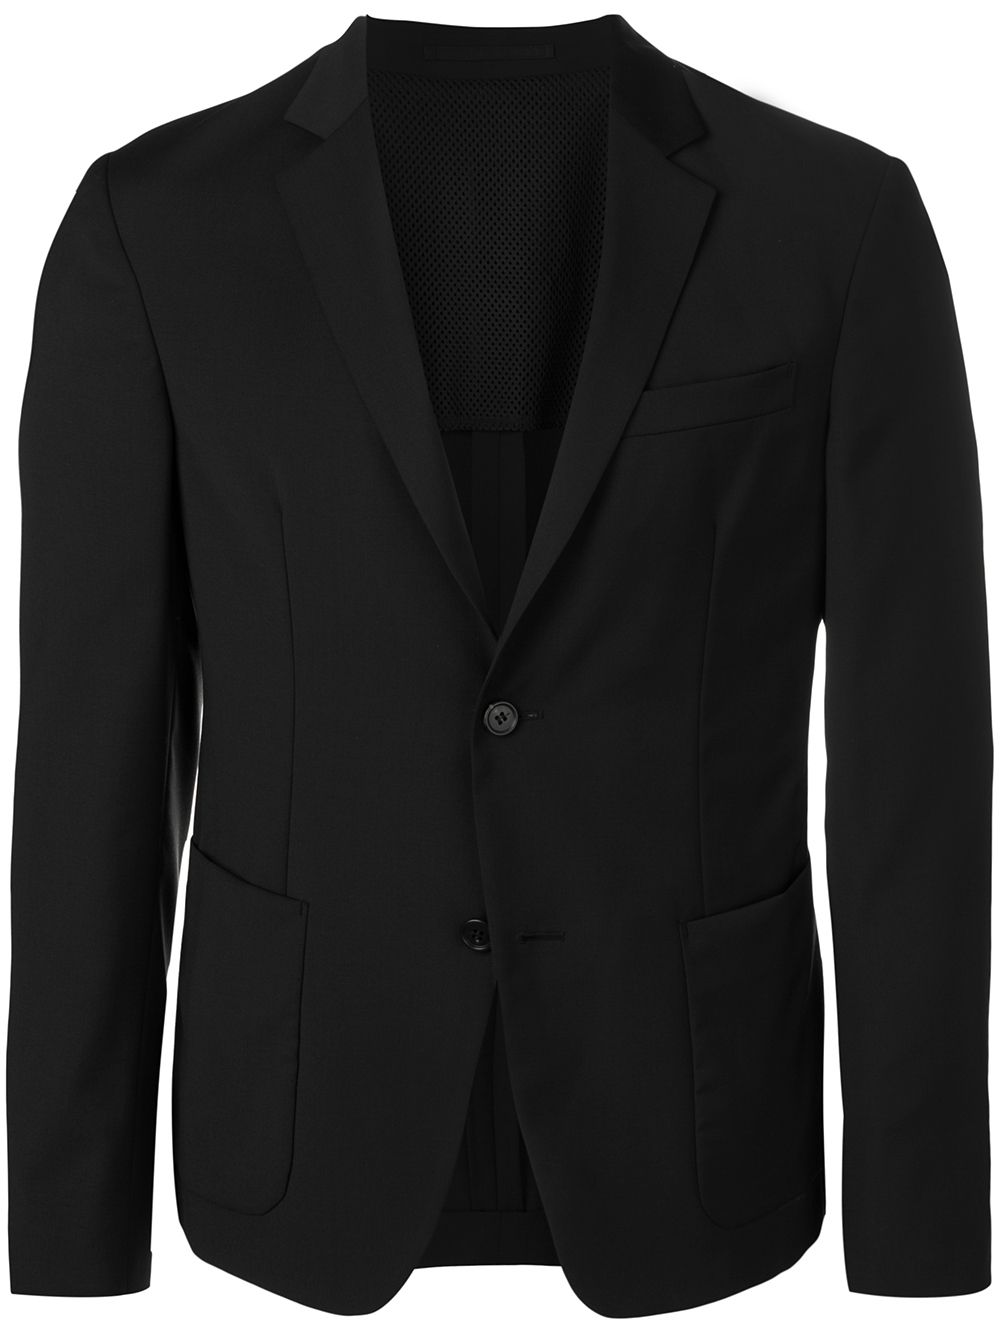 Prada single breasted blazer - Black von Prada